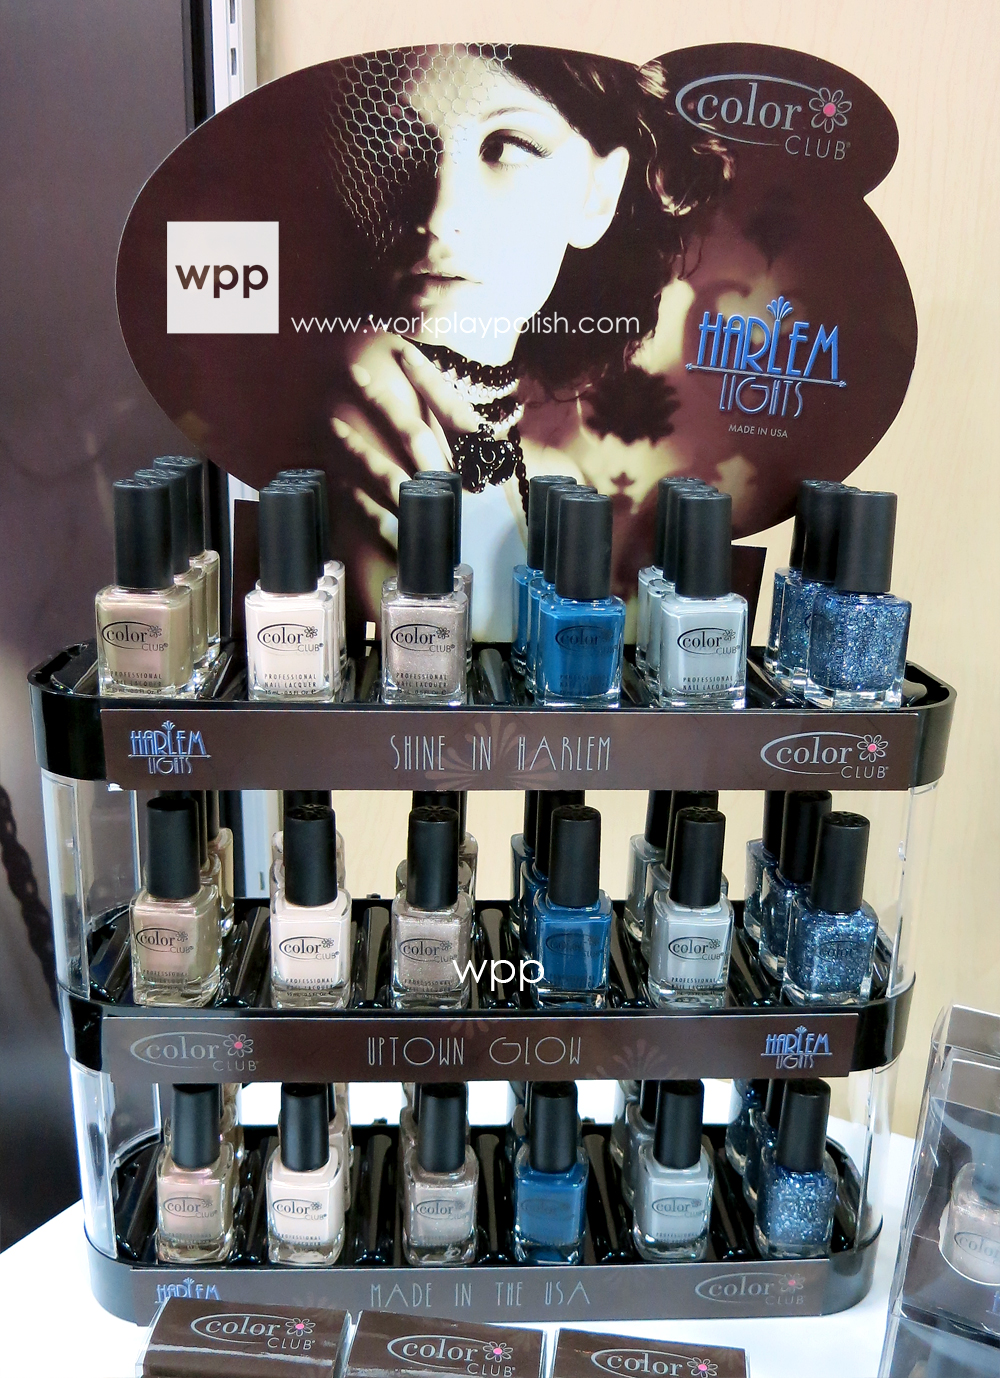 Color Club Harlem Nights (Winter 2013) WPP